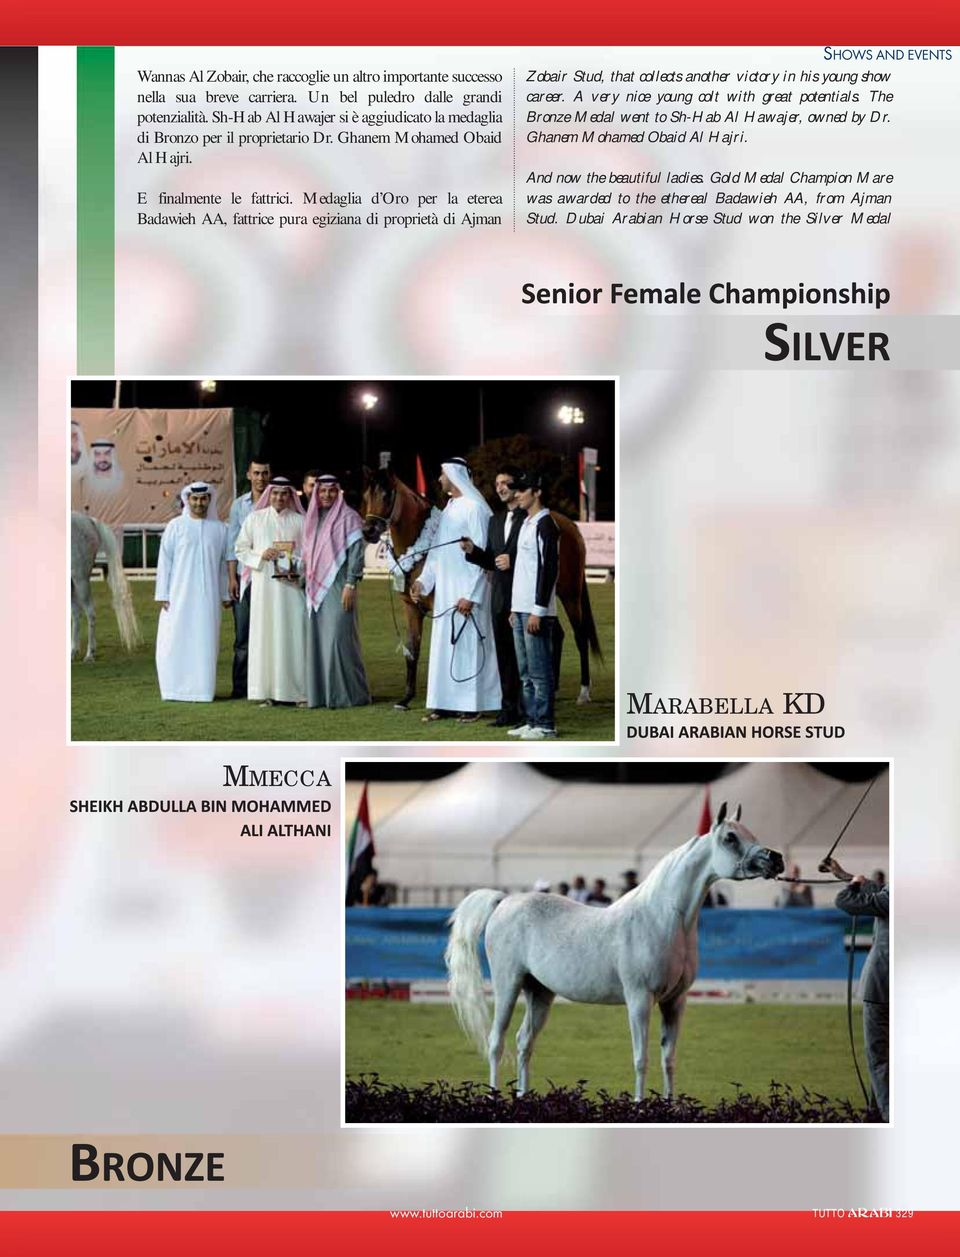 Medaglia d Oro per la eterea Badawieh AA, fattrice pura egiziana di proprietà di Ajman SHOWS AND EVENTS Zobair Stud, that collects another victory in his young show career.